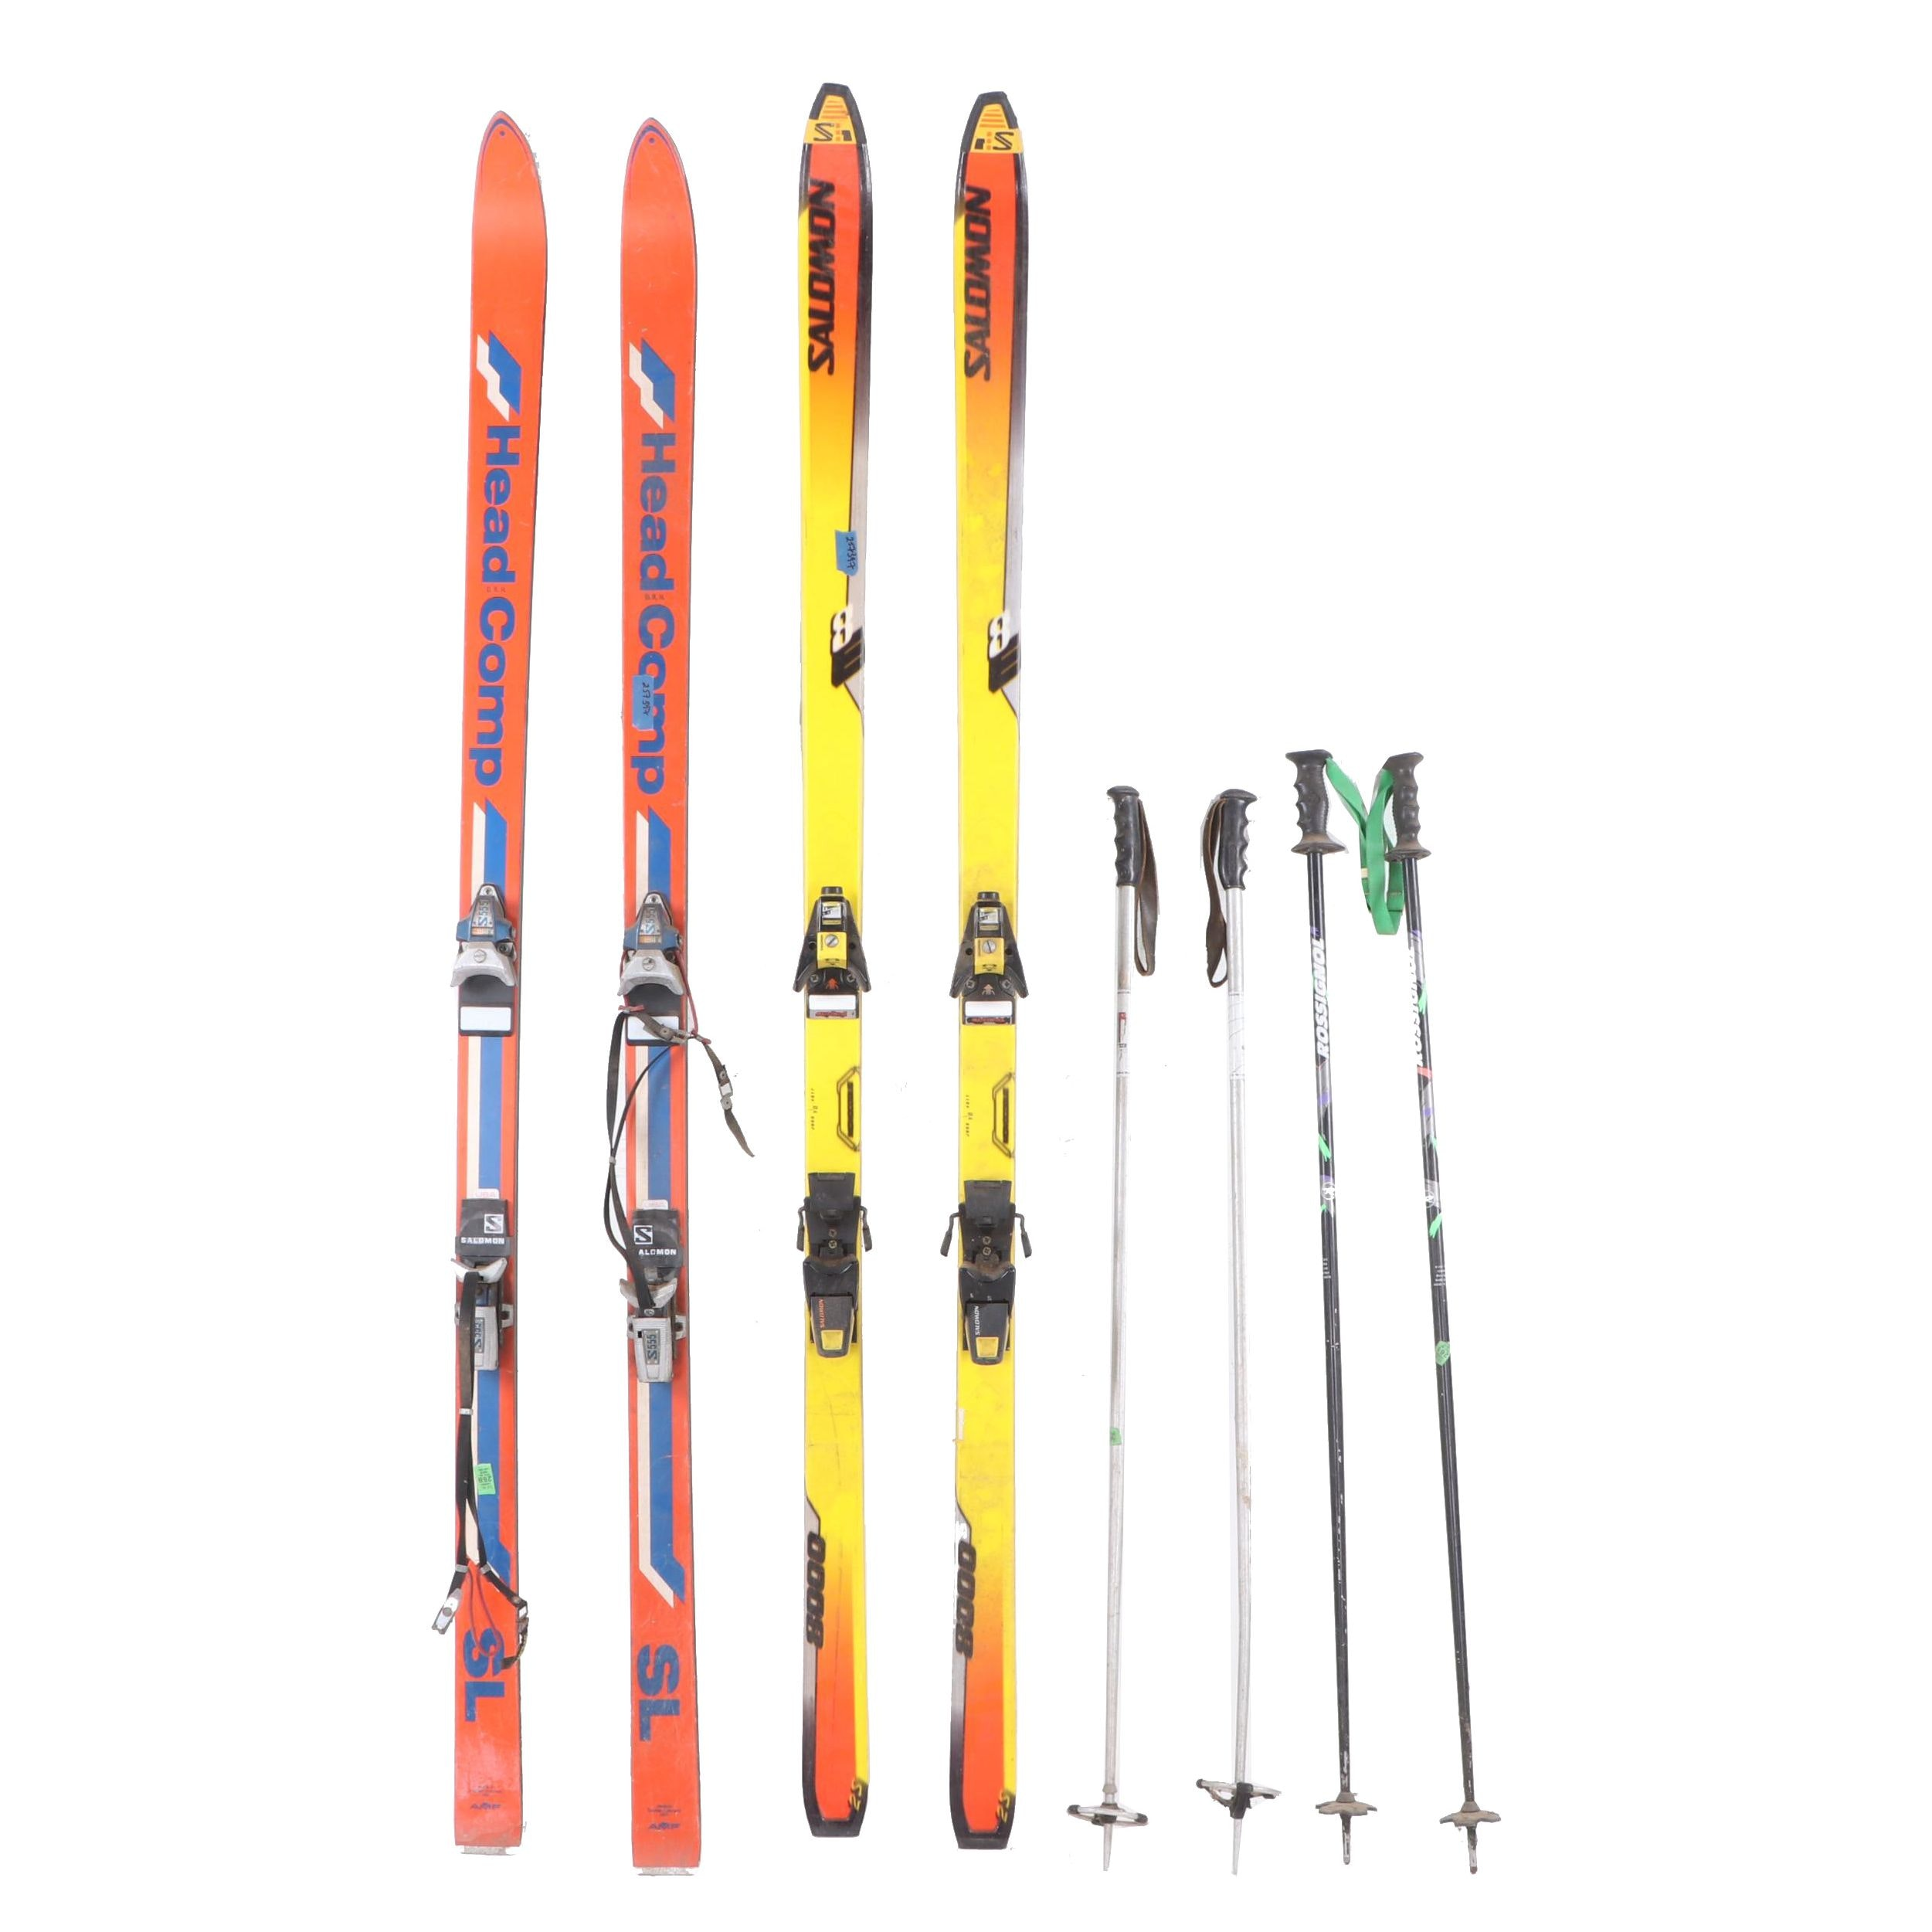 Salomon 8000 and Head Comp SL Skis with Poles